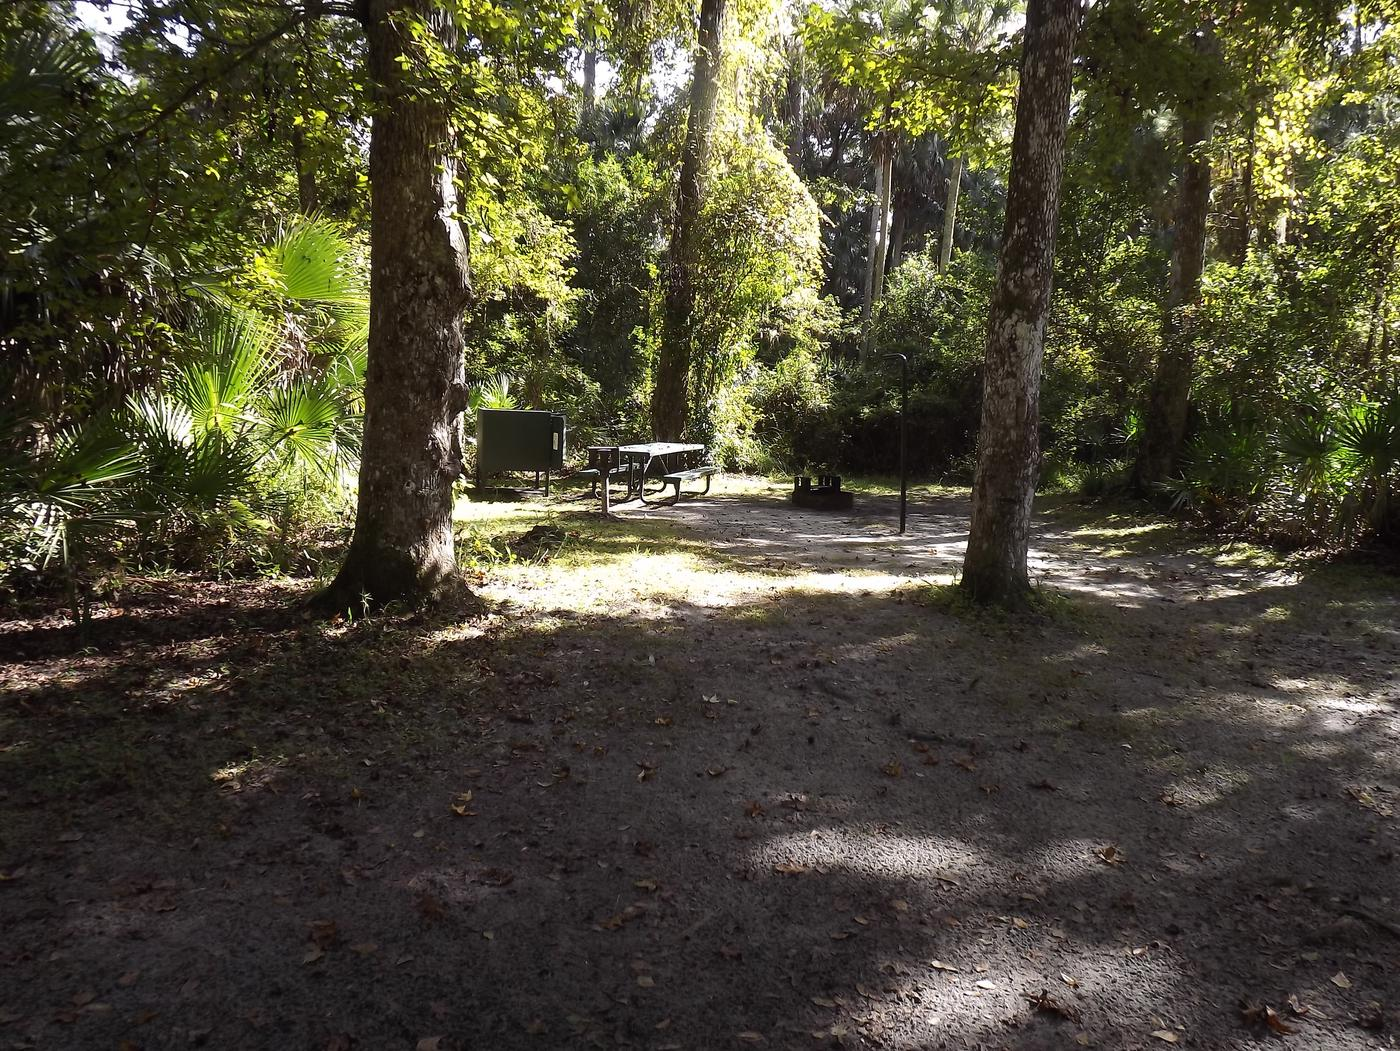 Juniper Springs Recreation Area site #66 tropical setting with picnic area and camping space.